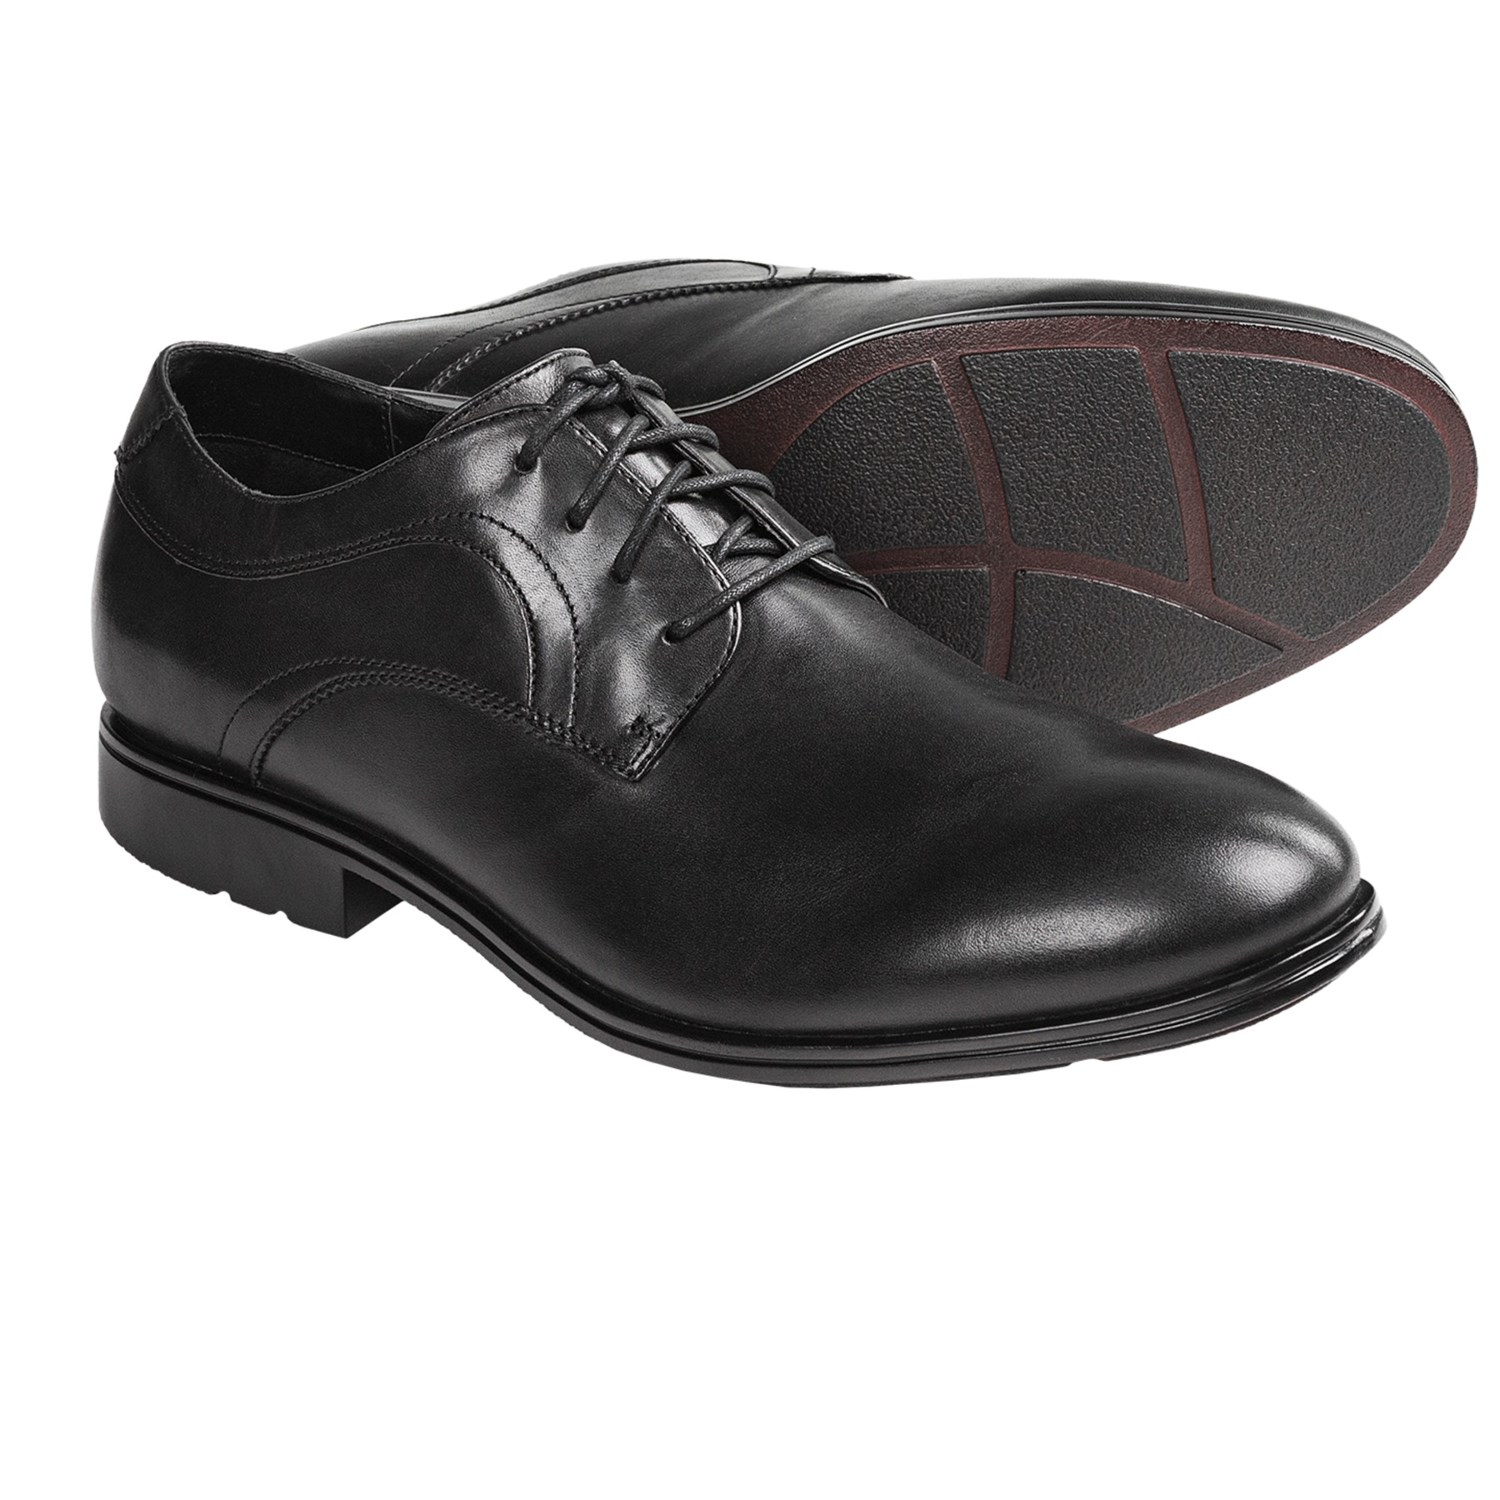 Rockport Fairwood 2 Plain Toe Oxford Shoes (For Men) in Black Smooth